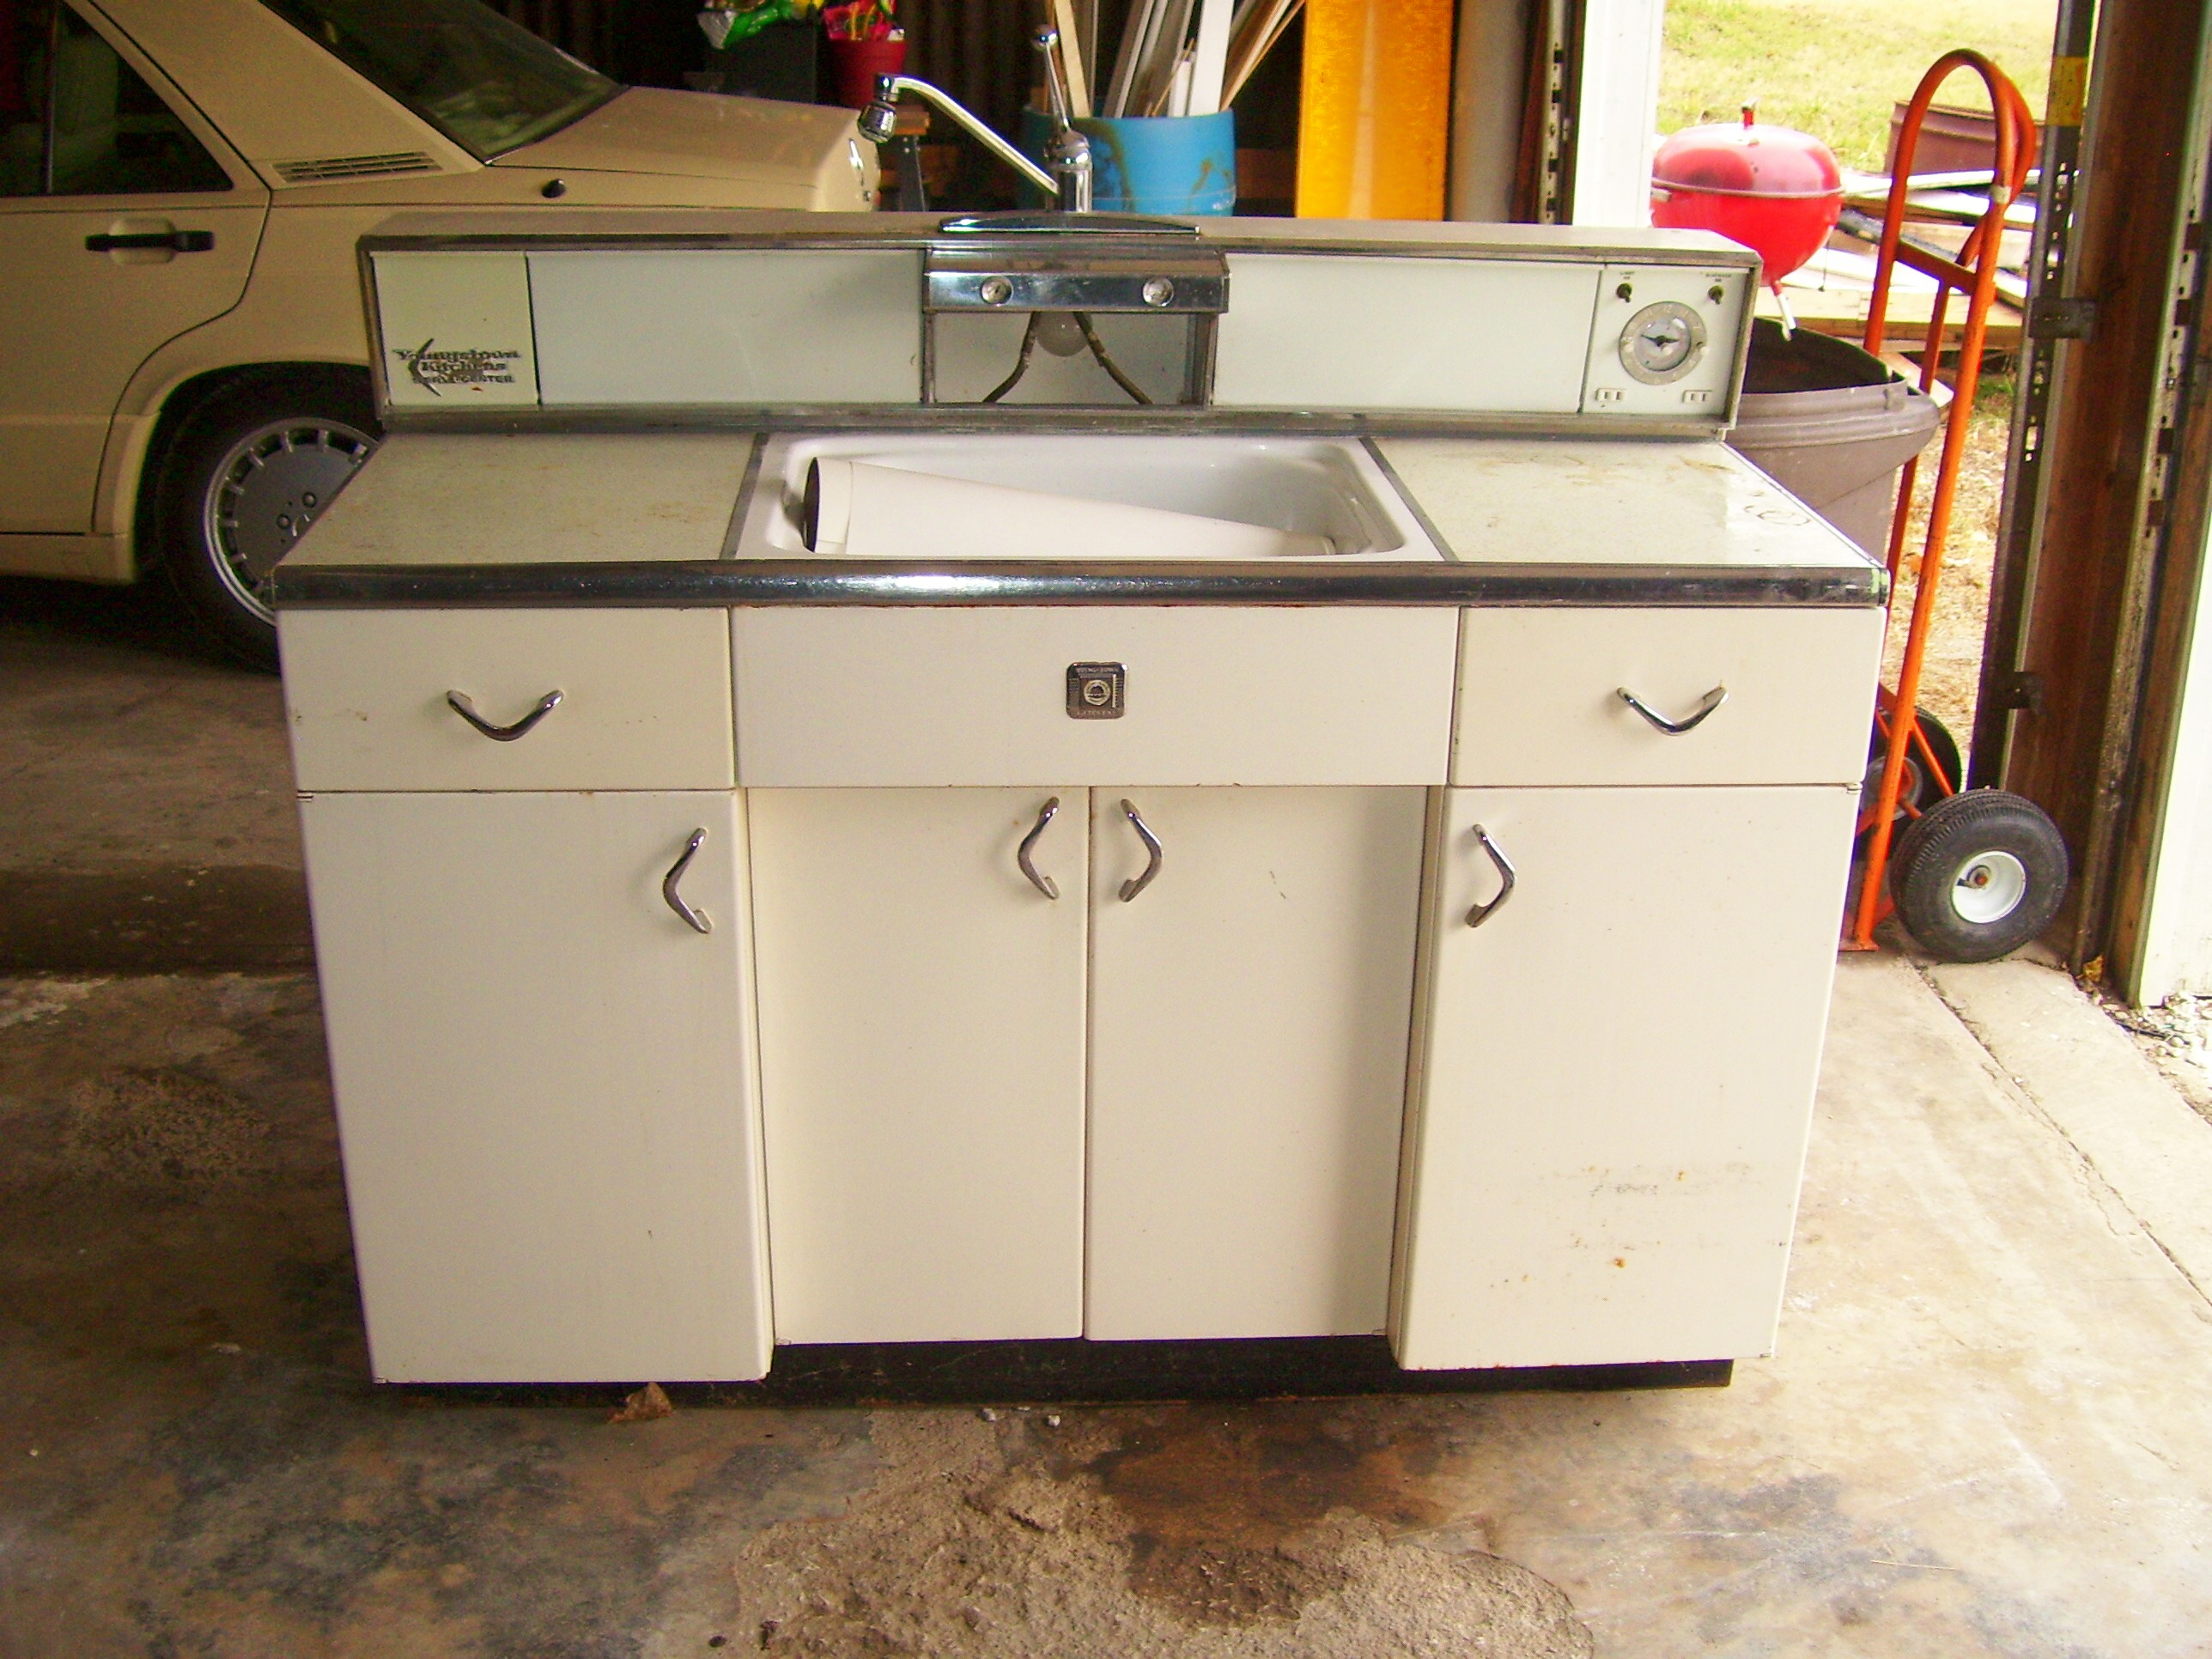 retro metal cabinets for sale kitchen cabinets for sale Retro Metal Cabinets for sale